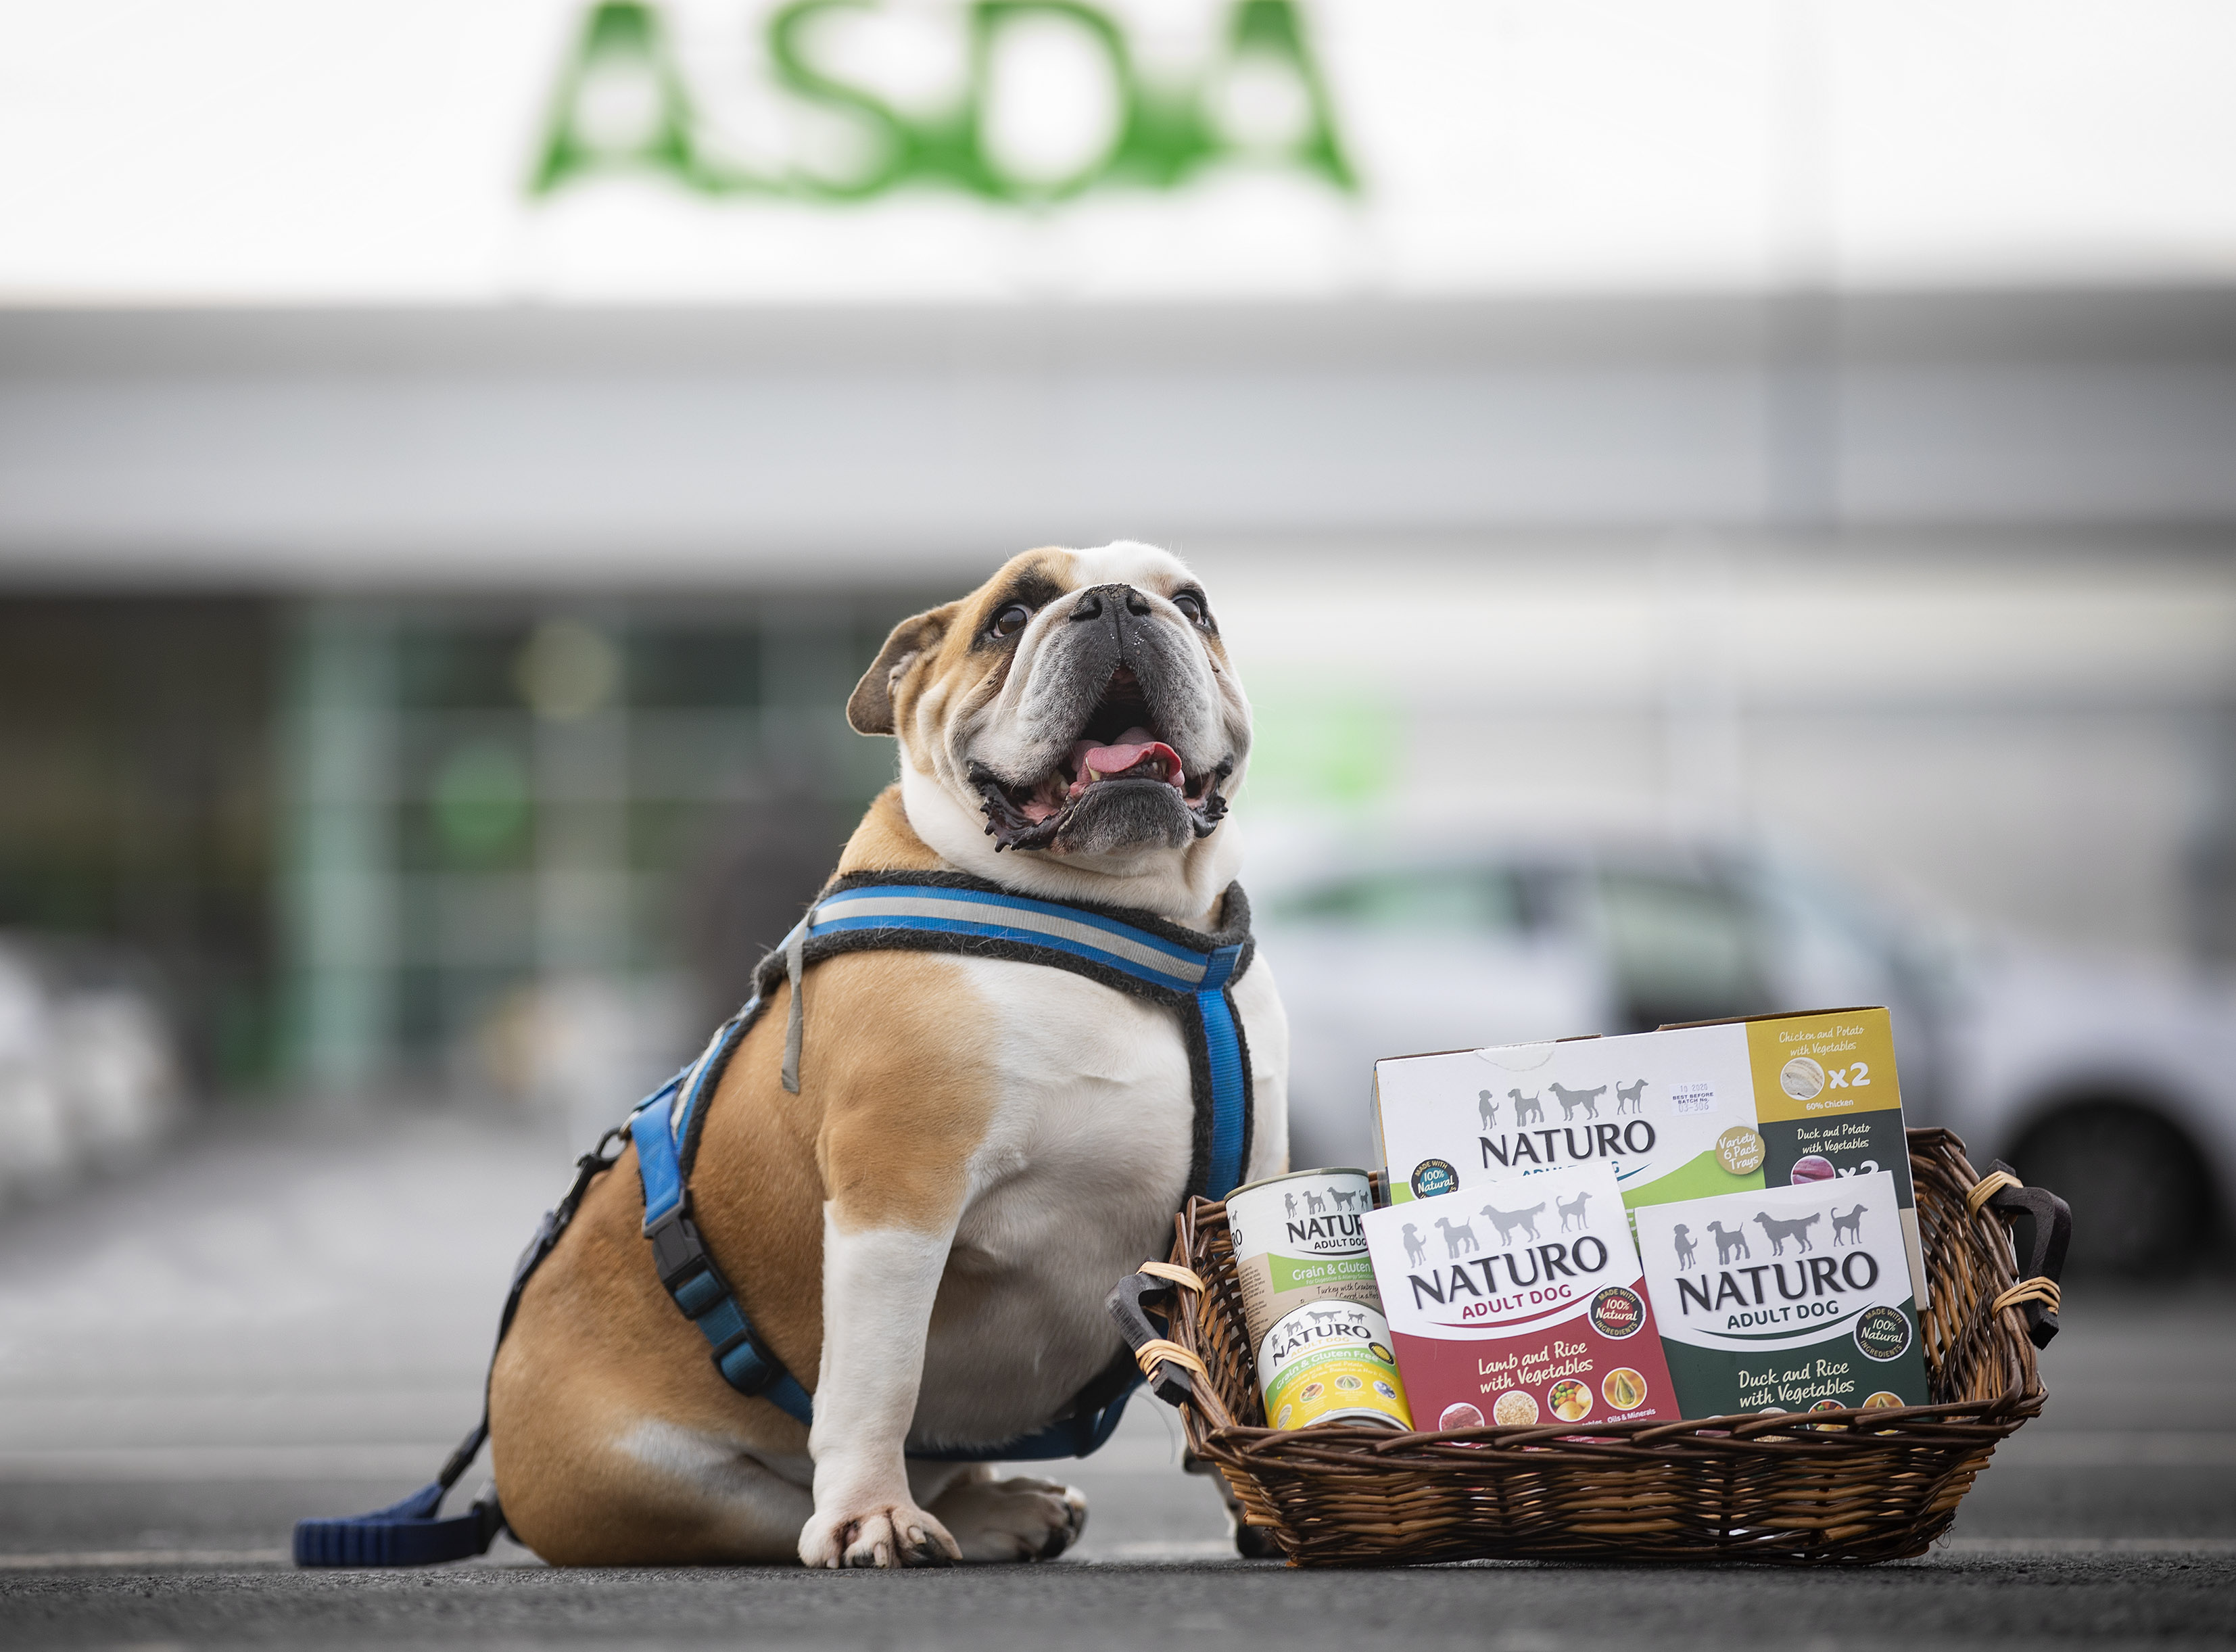 Naturo range goes from strength to strength in Asda Stores